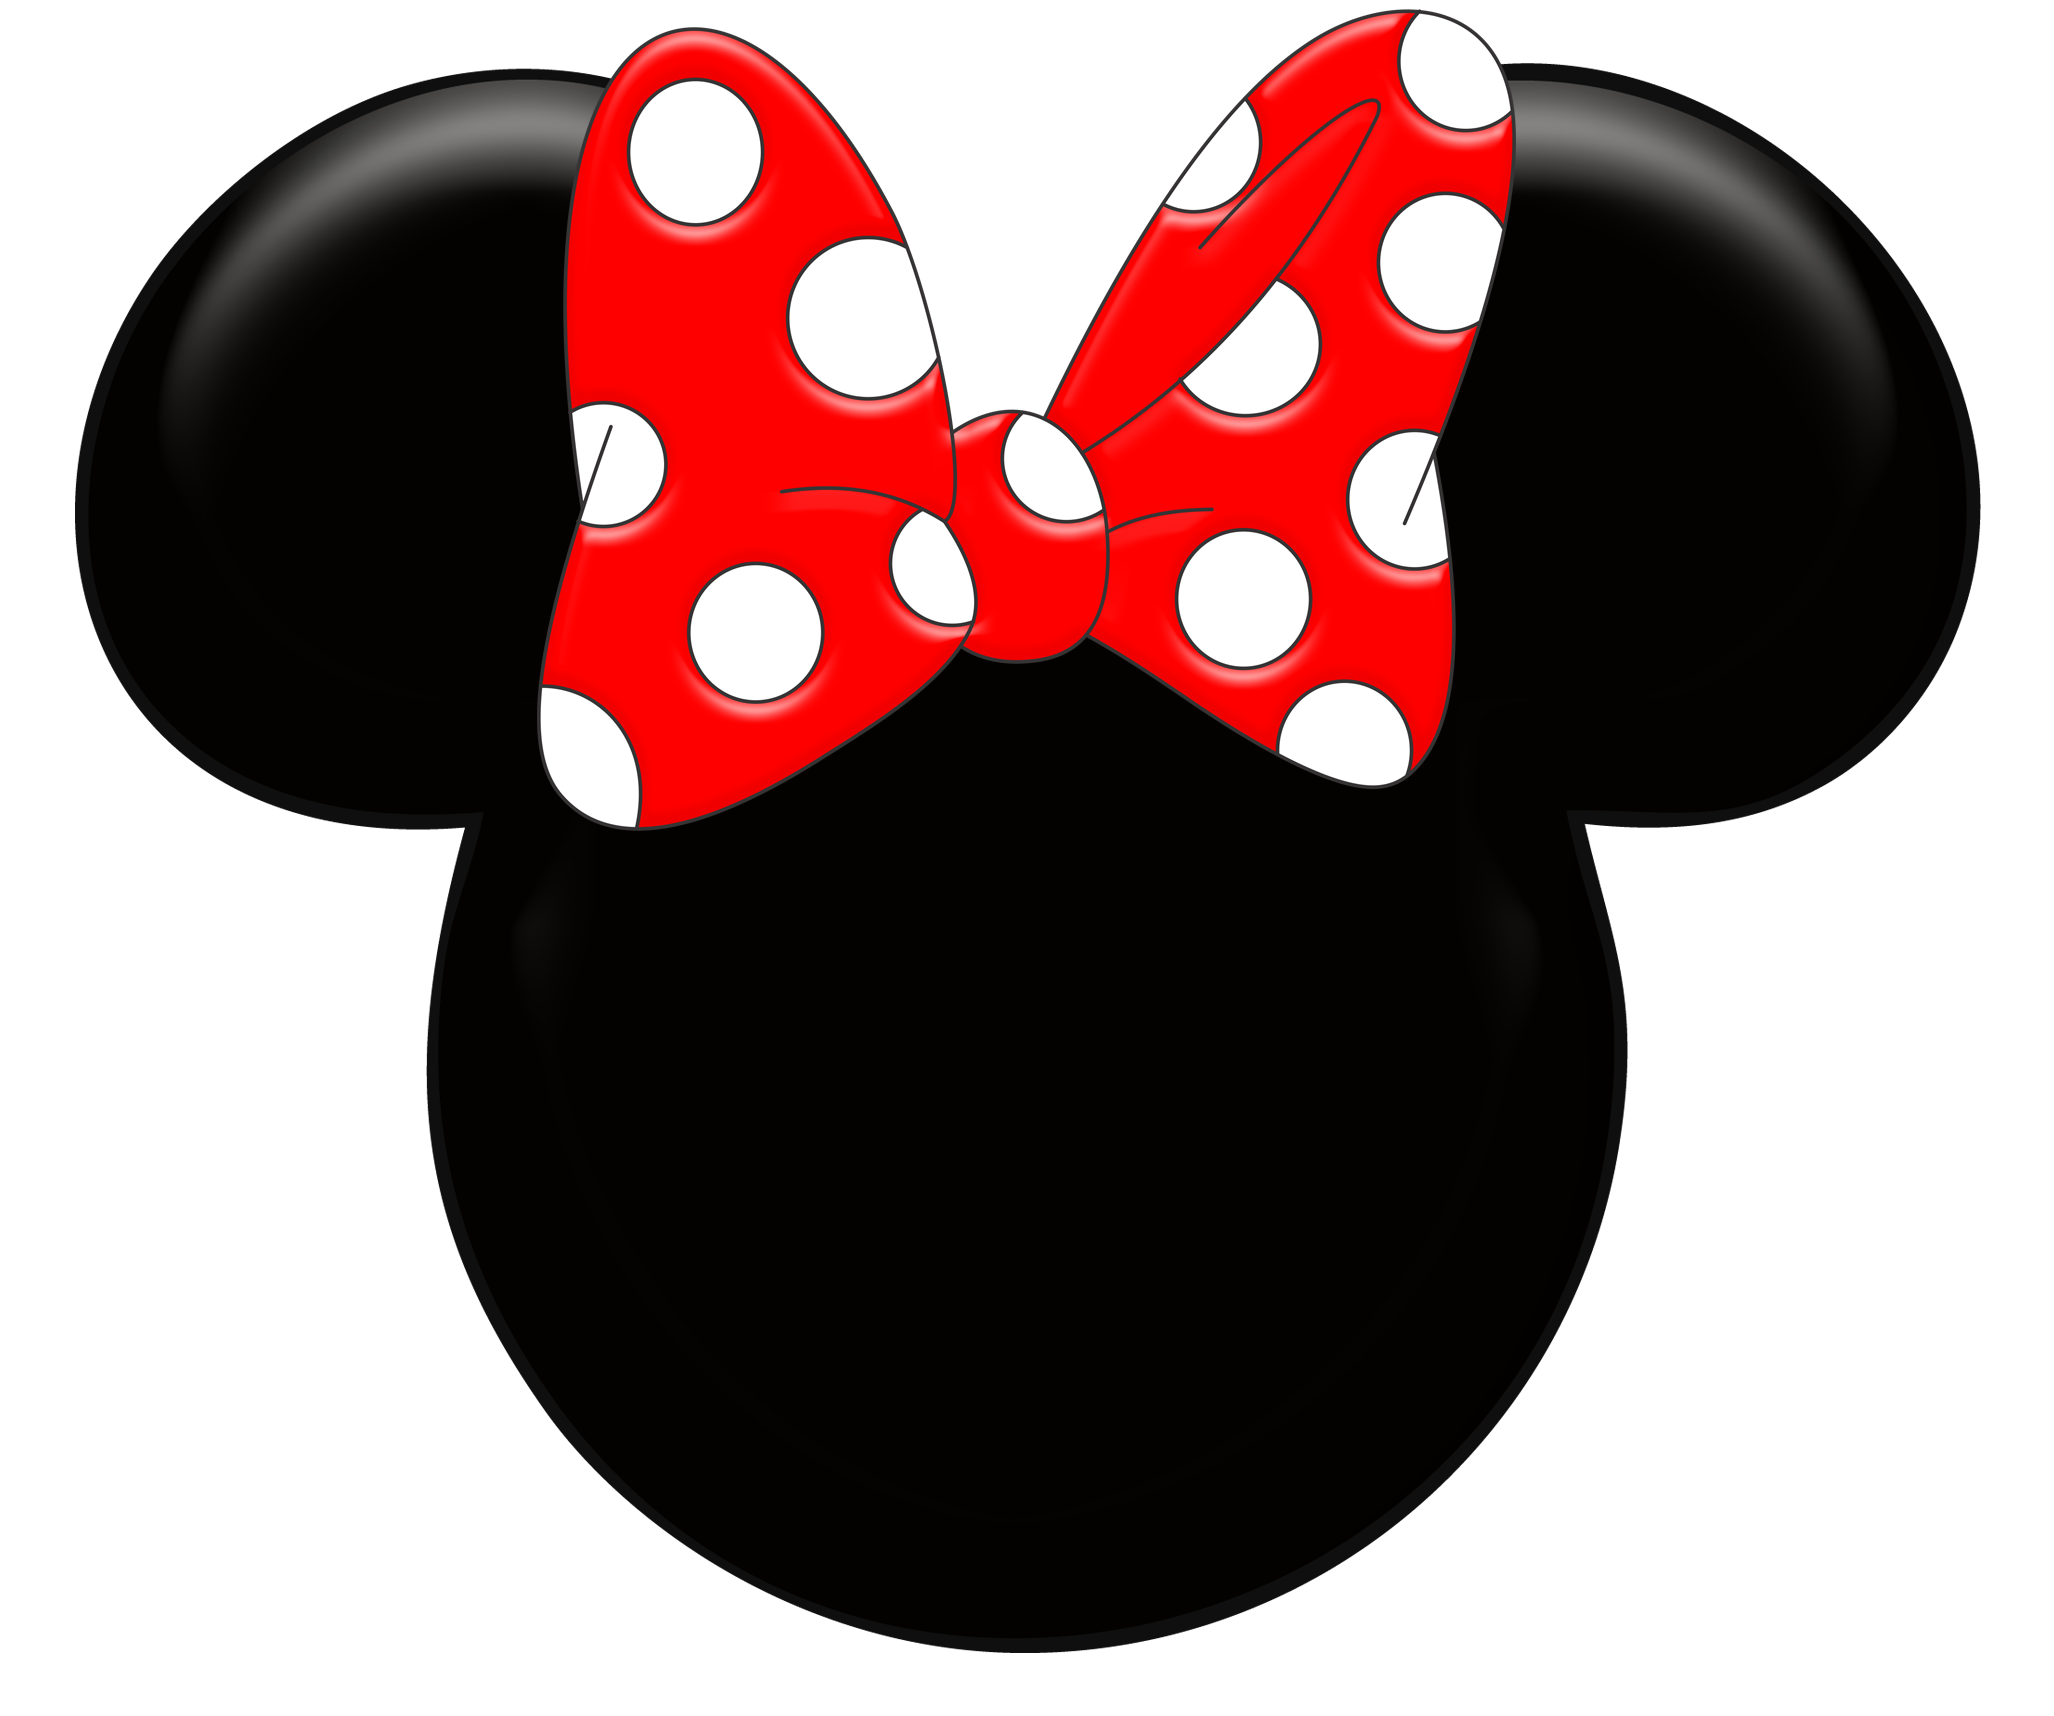 Pirate clipart minnie mouse. Red wallpaper panda free